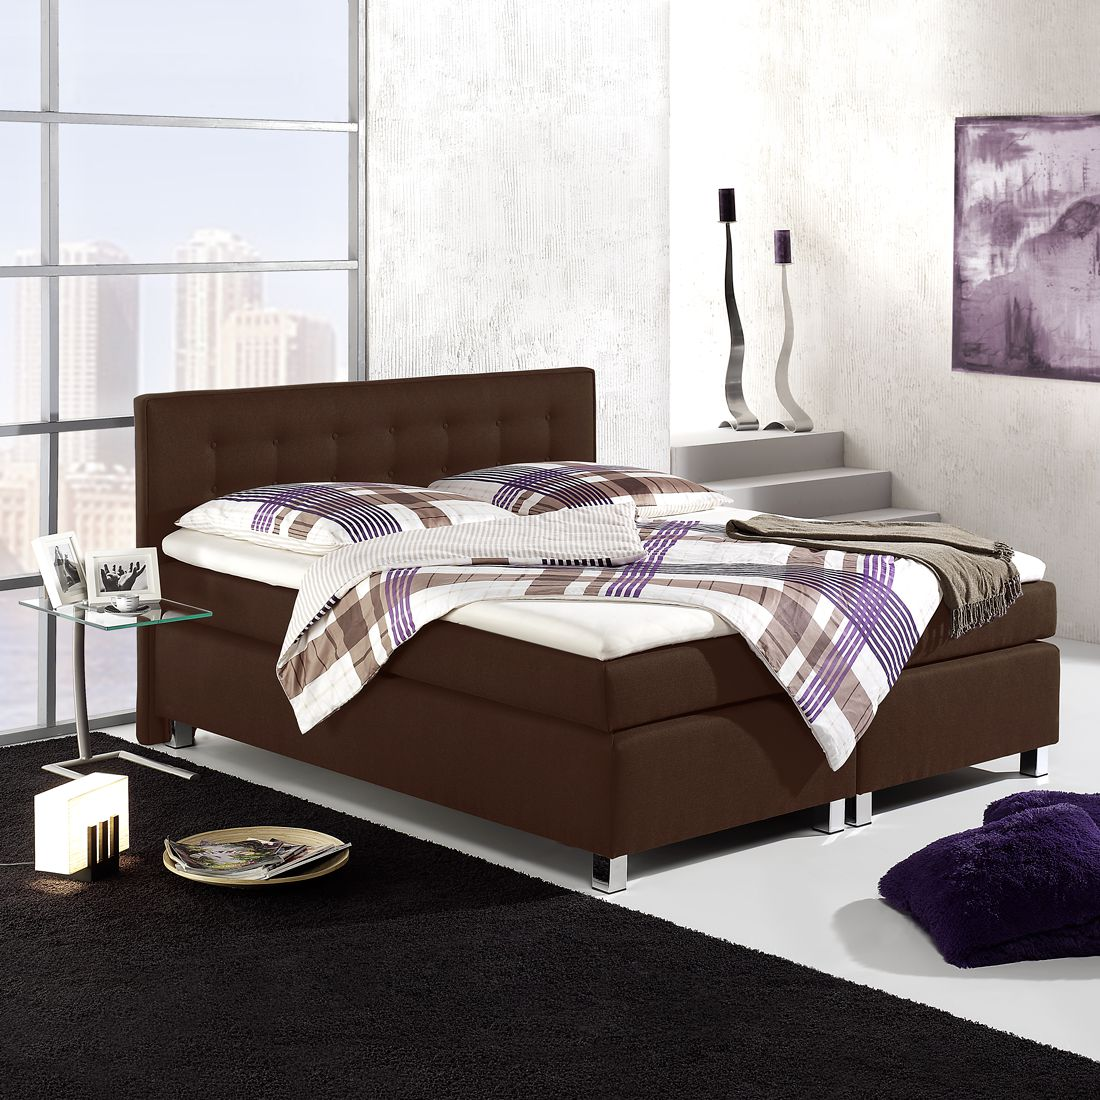 boxspringbett melody strukturstoff 160 x 200cm h3 ab. Black Bedroom Furniture Sets. Home Design Ideas